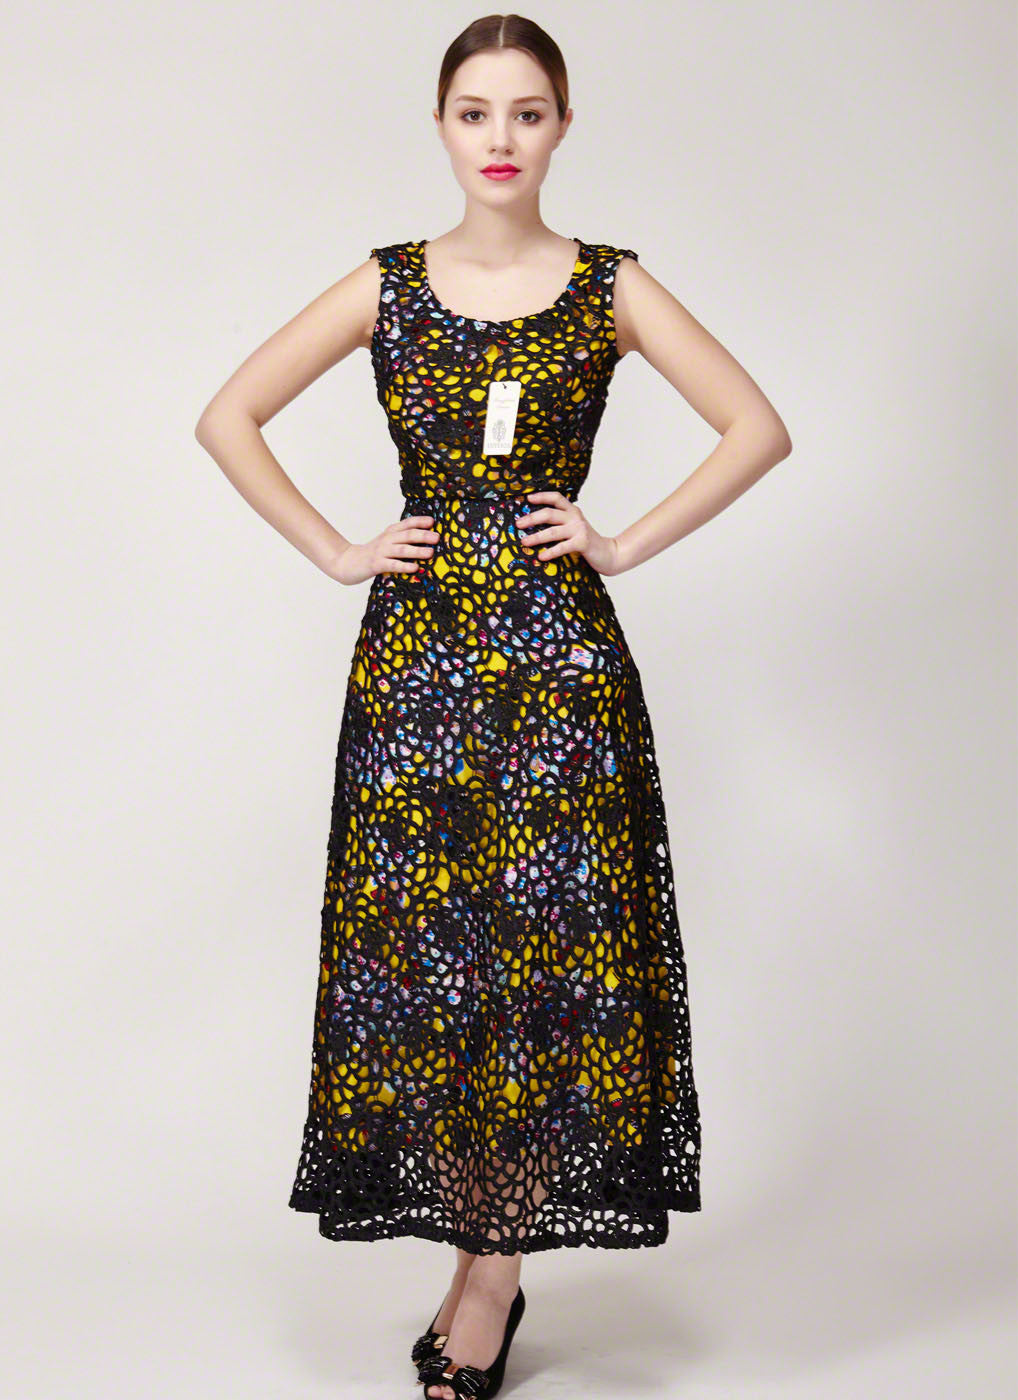 Black Lace Evening Dress with Yellow Butterfly Pattern Lining ...